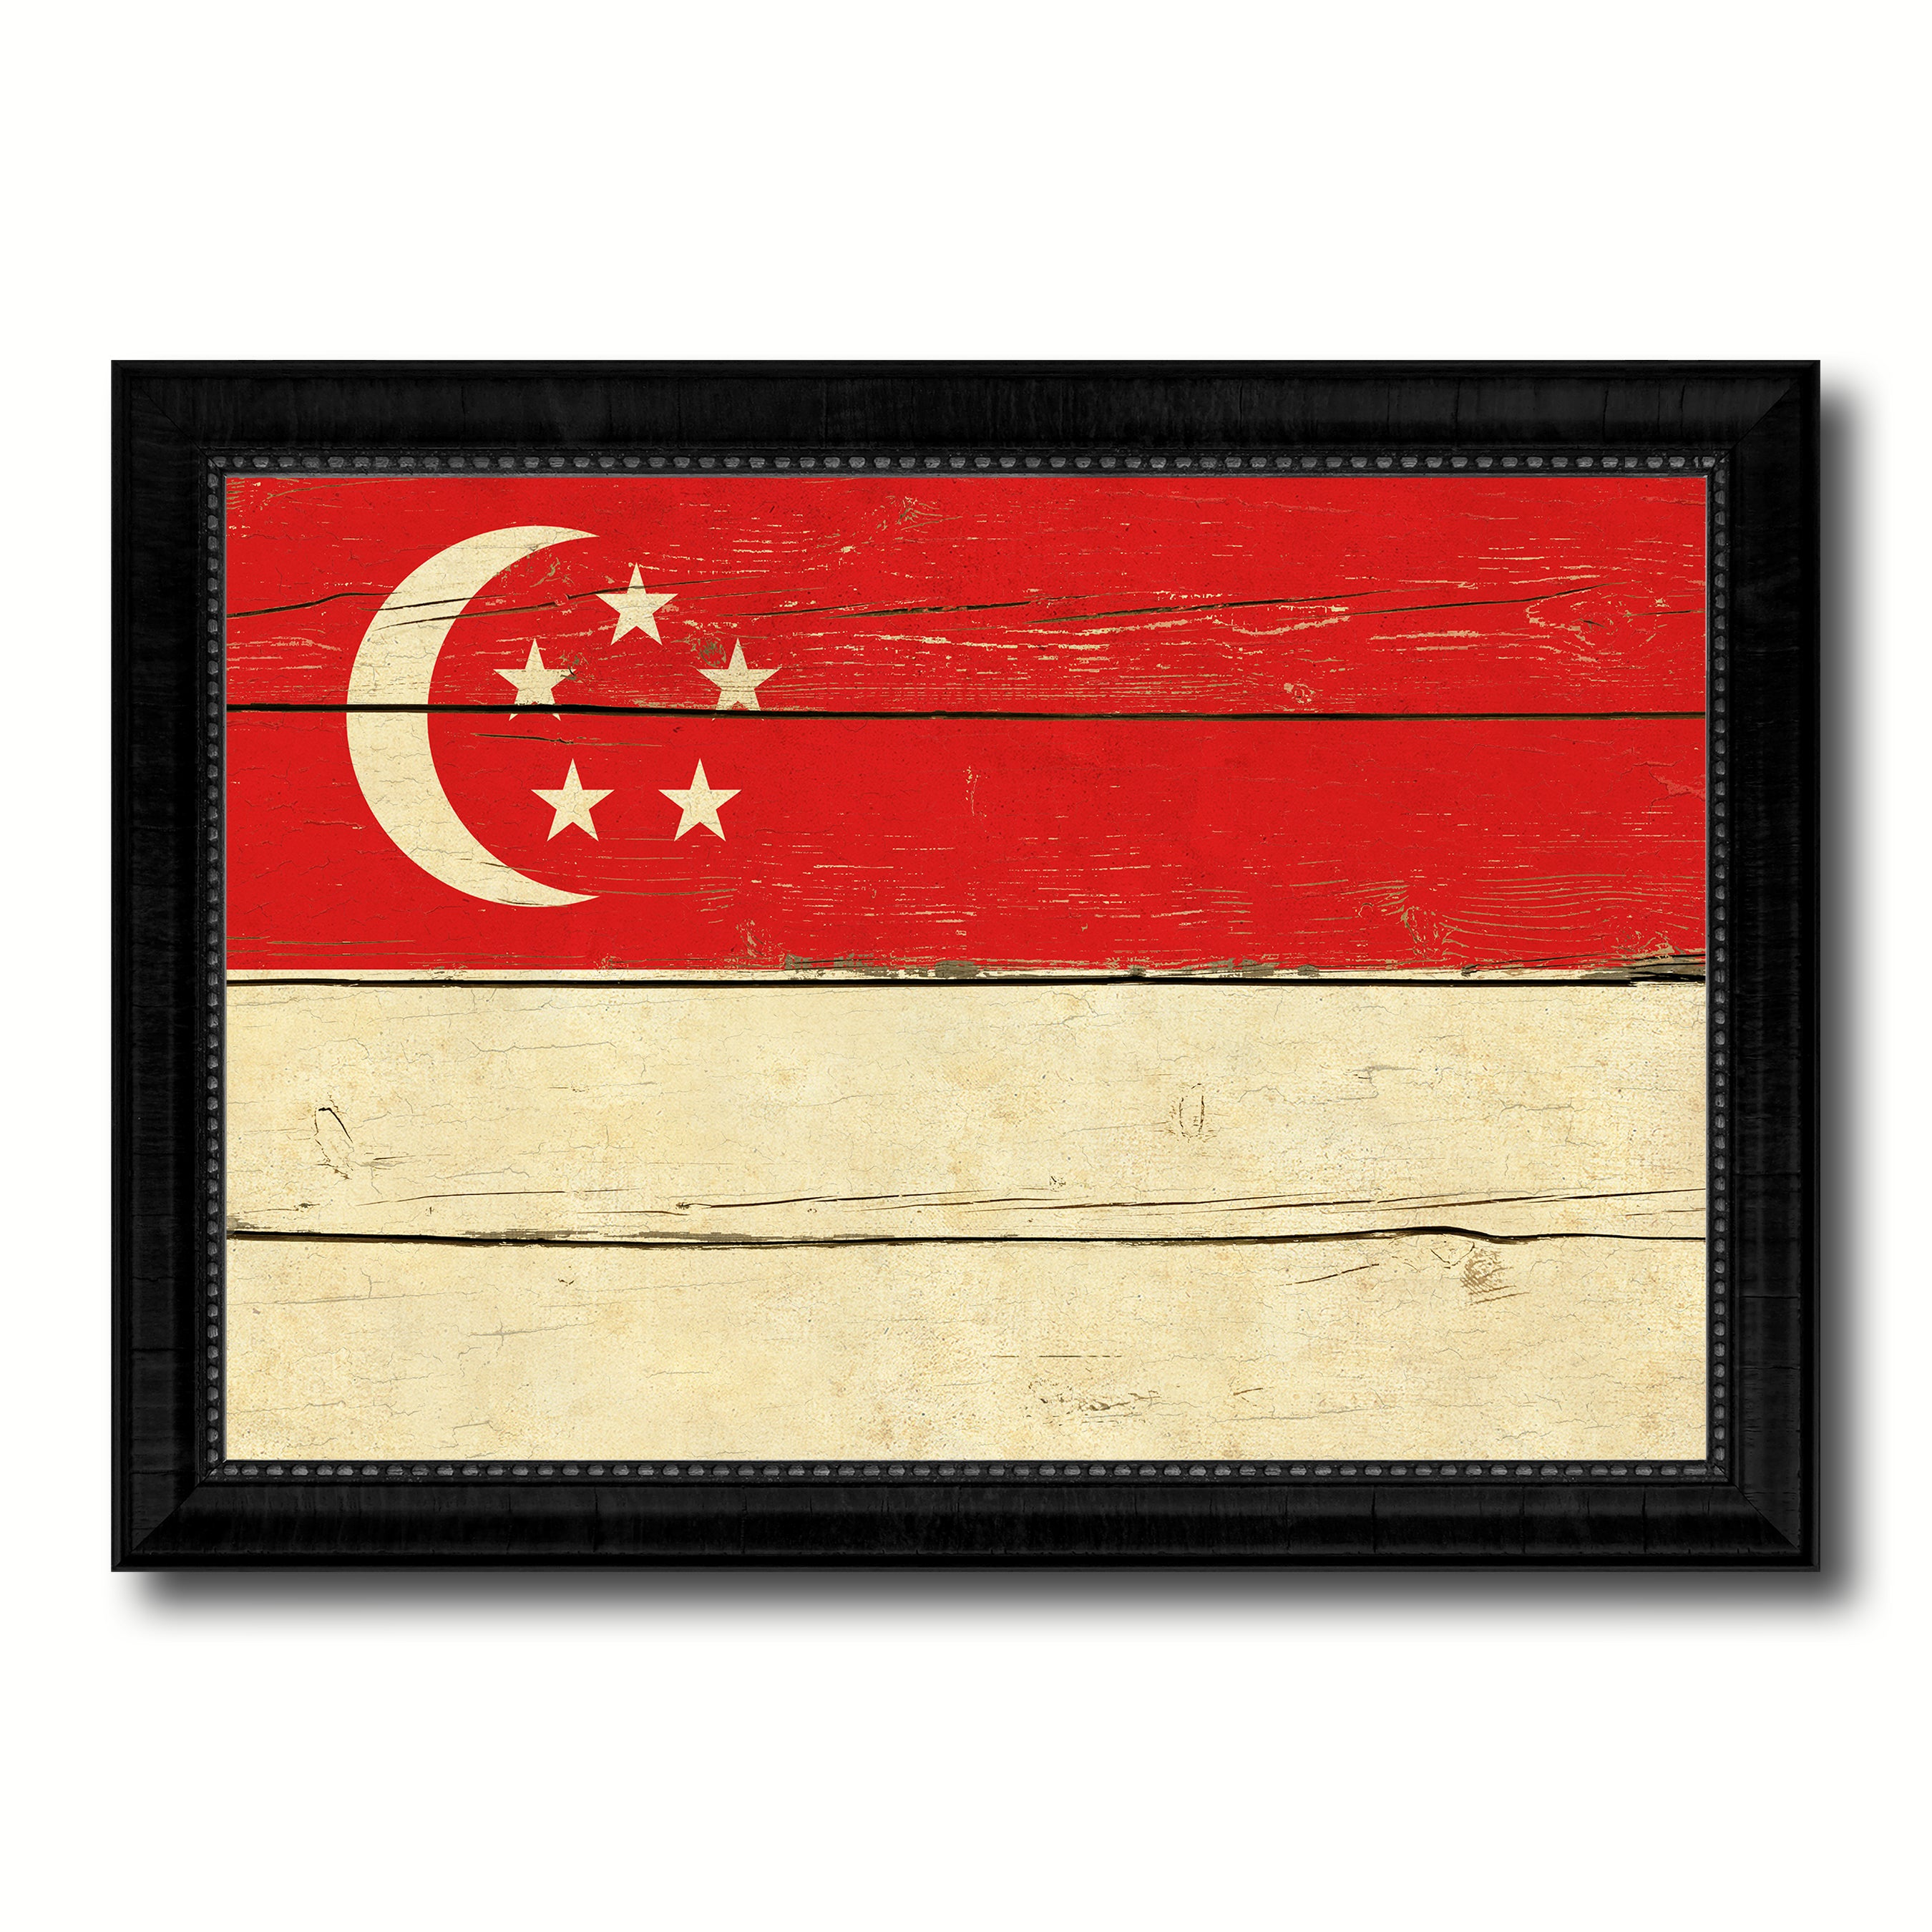 Singapore Country Flag Vintage Canvas Print with Black Picture Frame Home Decor Gifts Wall Art Decoration Artwork